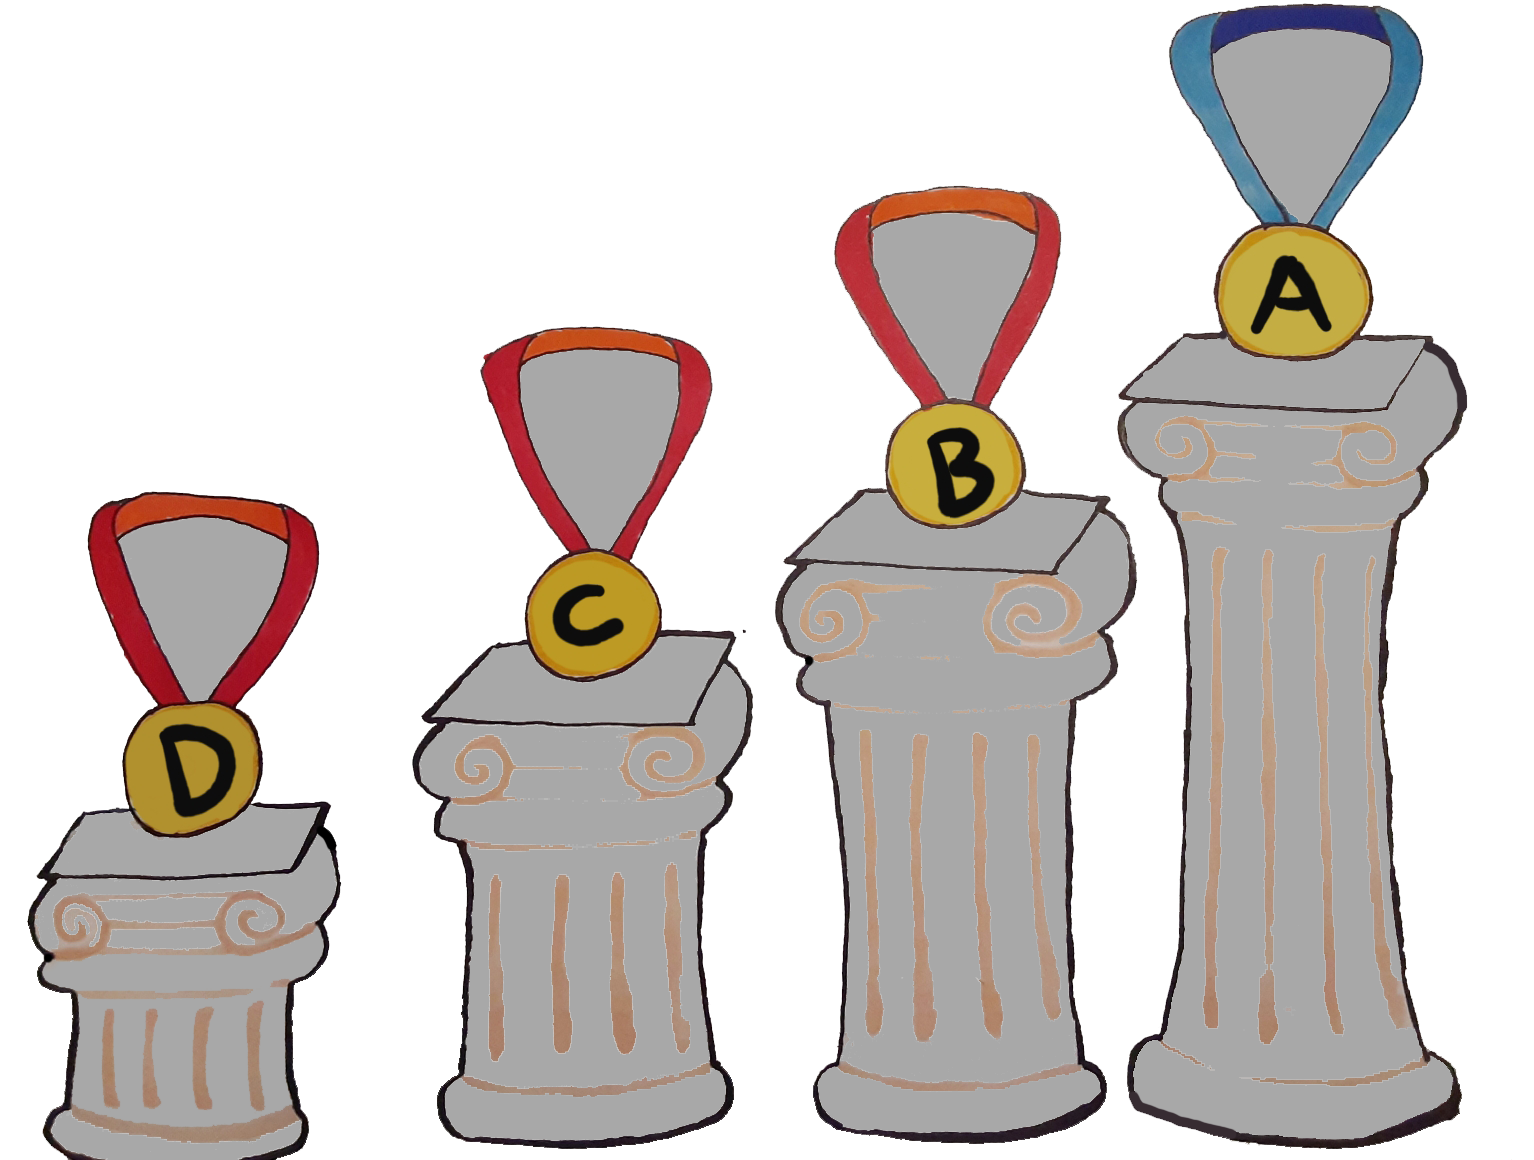 Medals from tallest to shortest with grades printed on them.